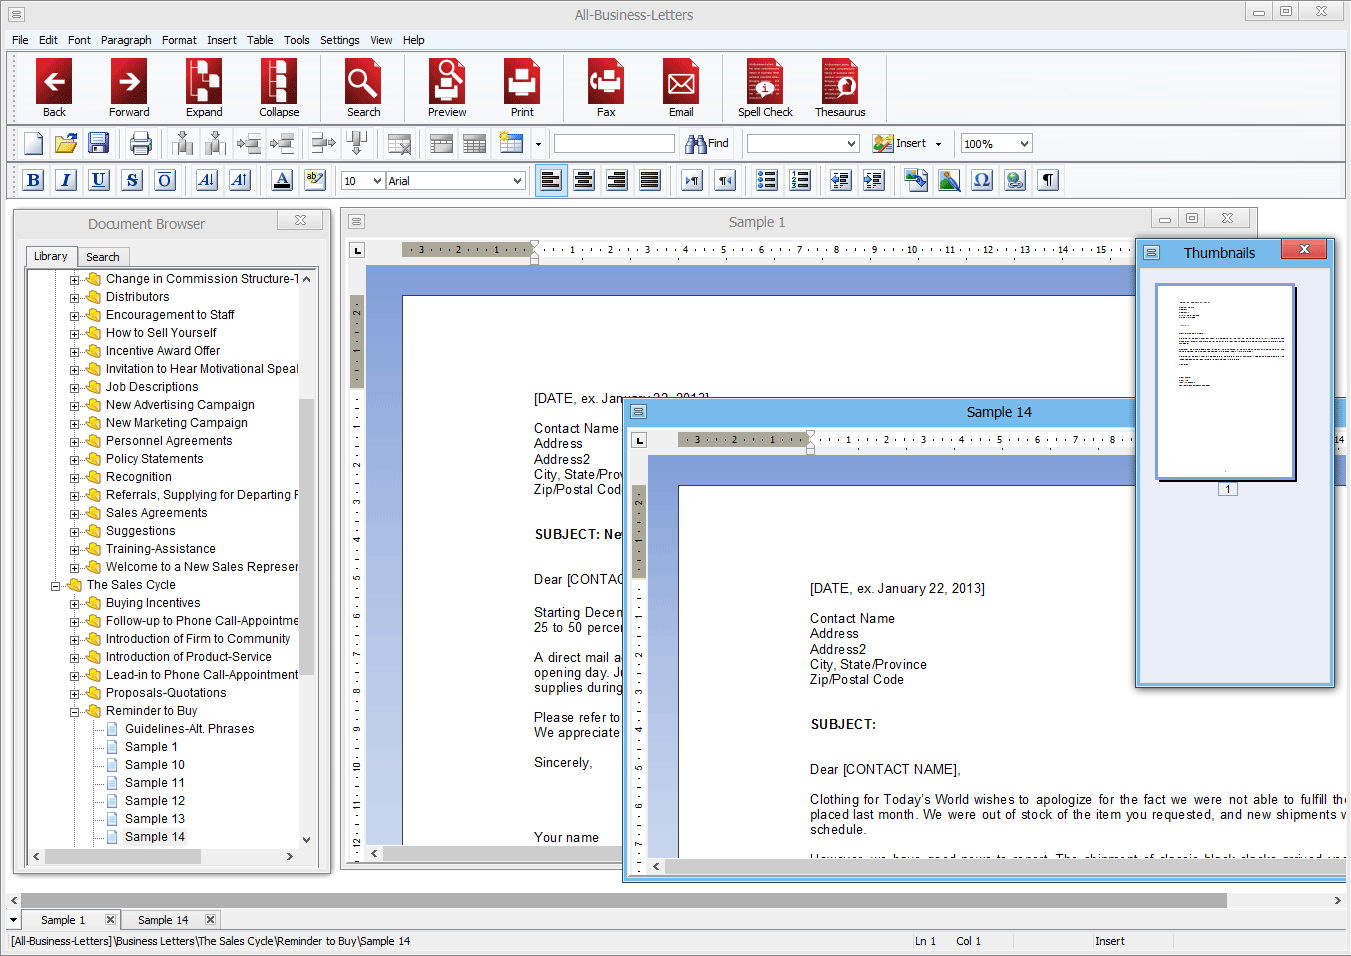 All-Business-Letters for Windows 6.3.0.2